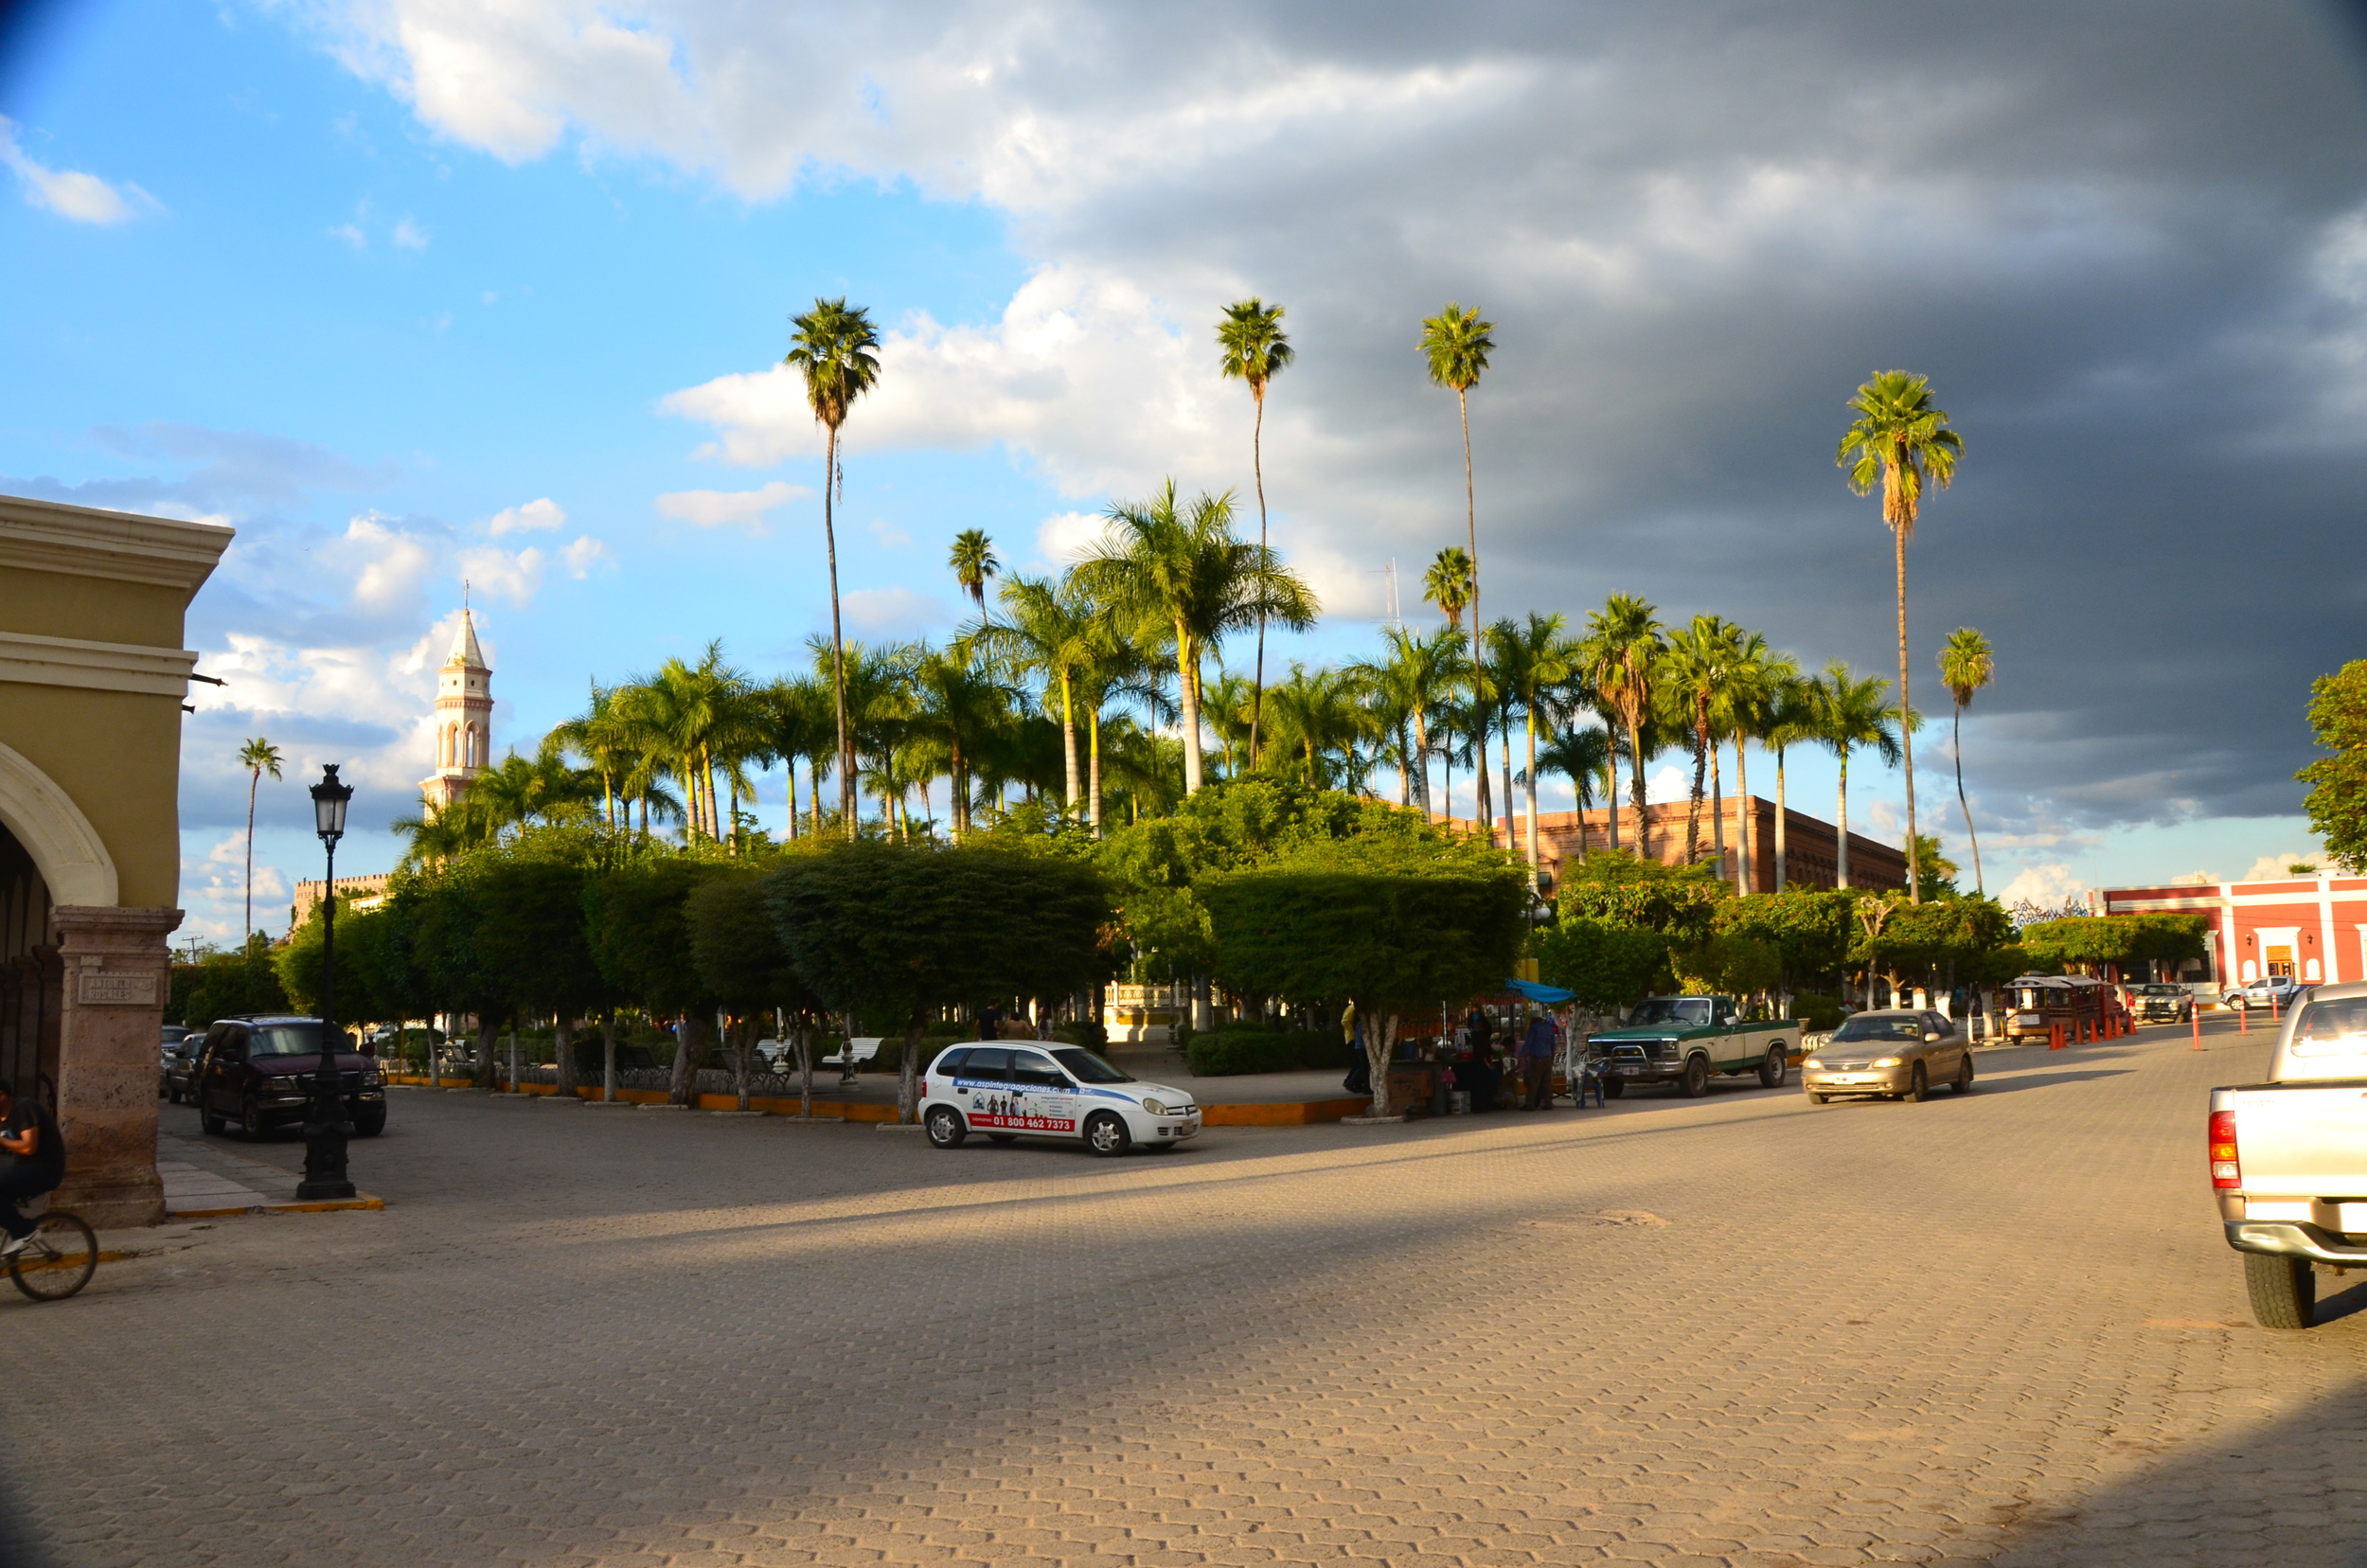 Looking at the city square, El Fuerte